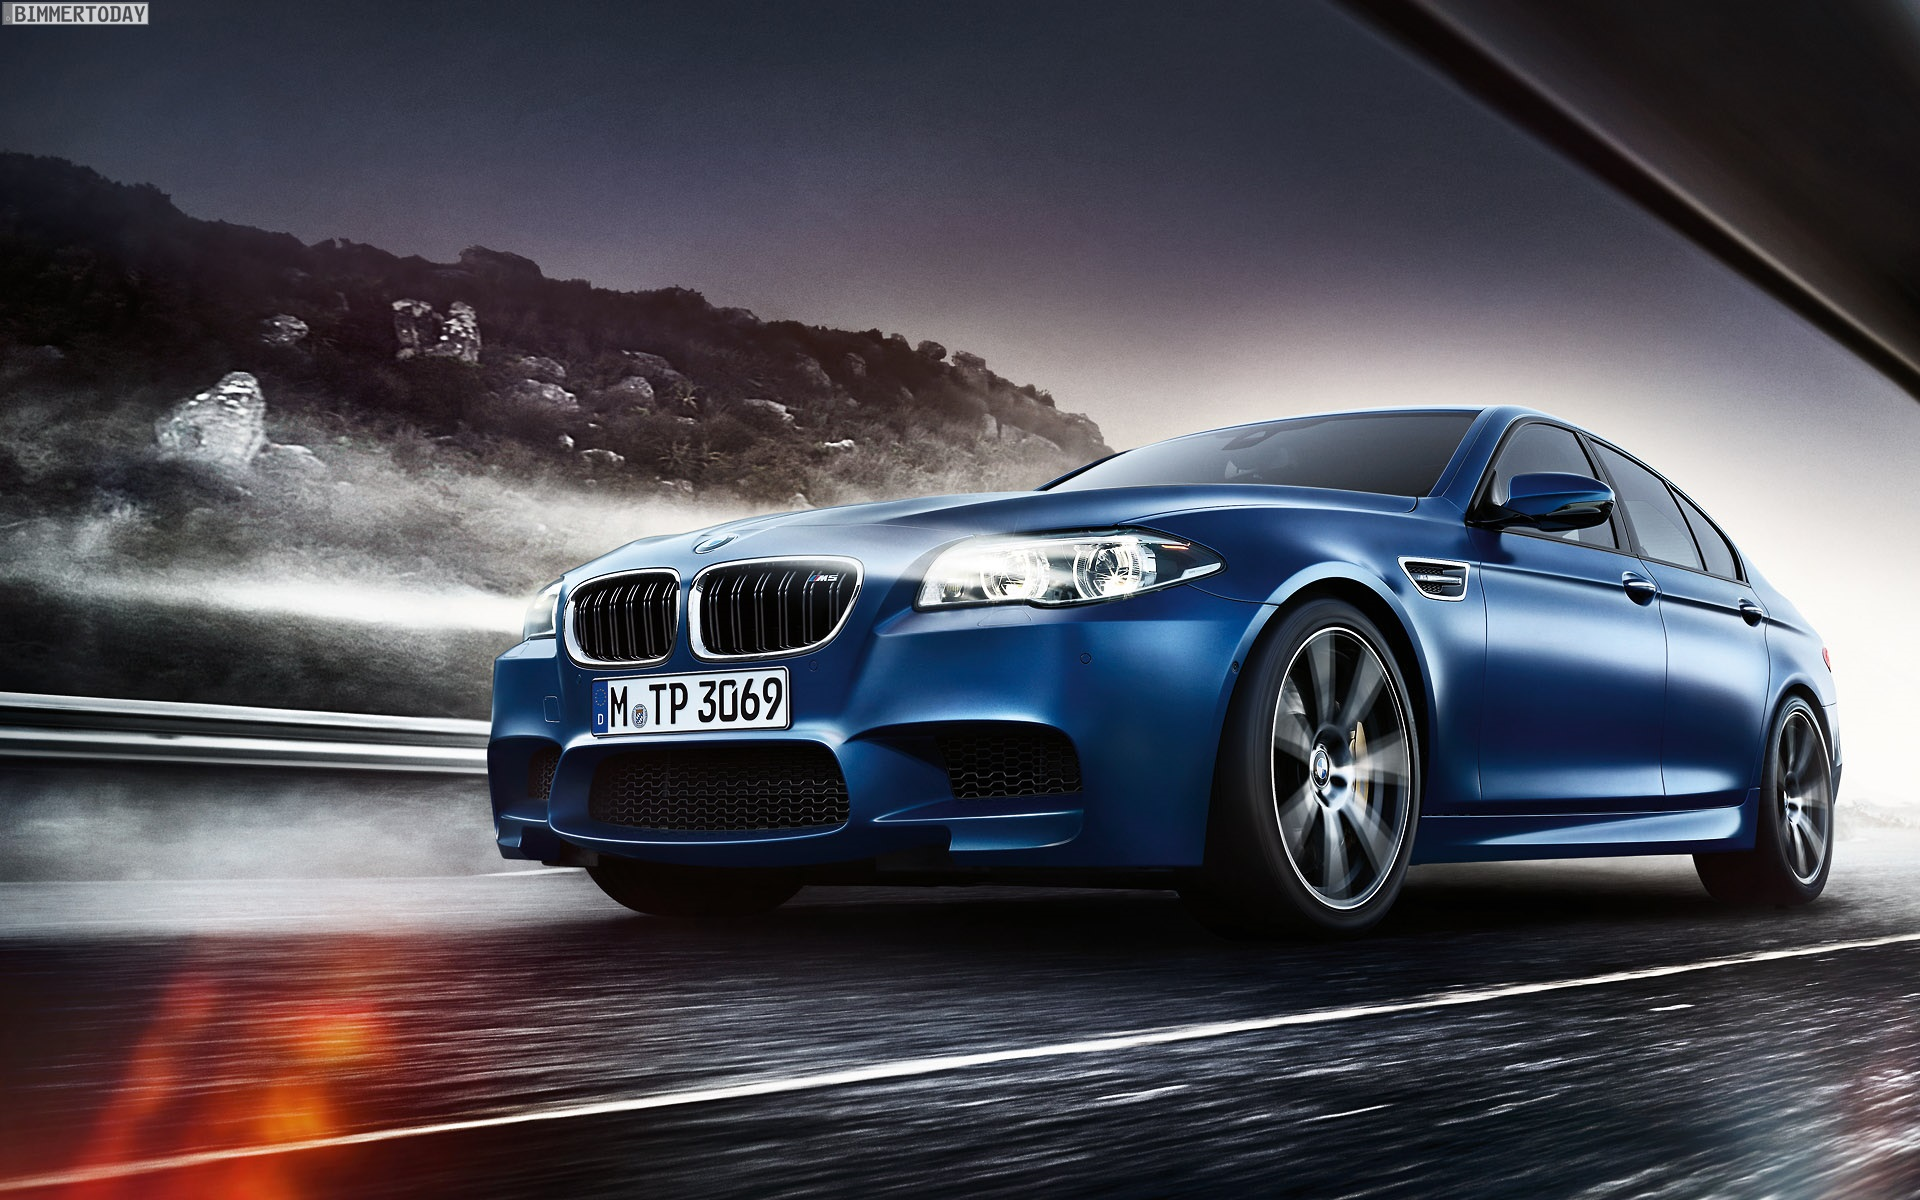 Bmw M5 F10 Wallpapers Hd 311 Wallpaper Walldiskpaper